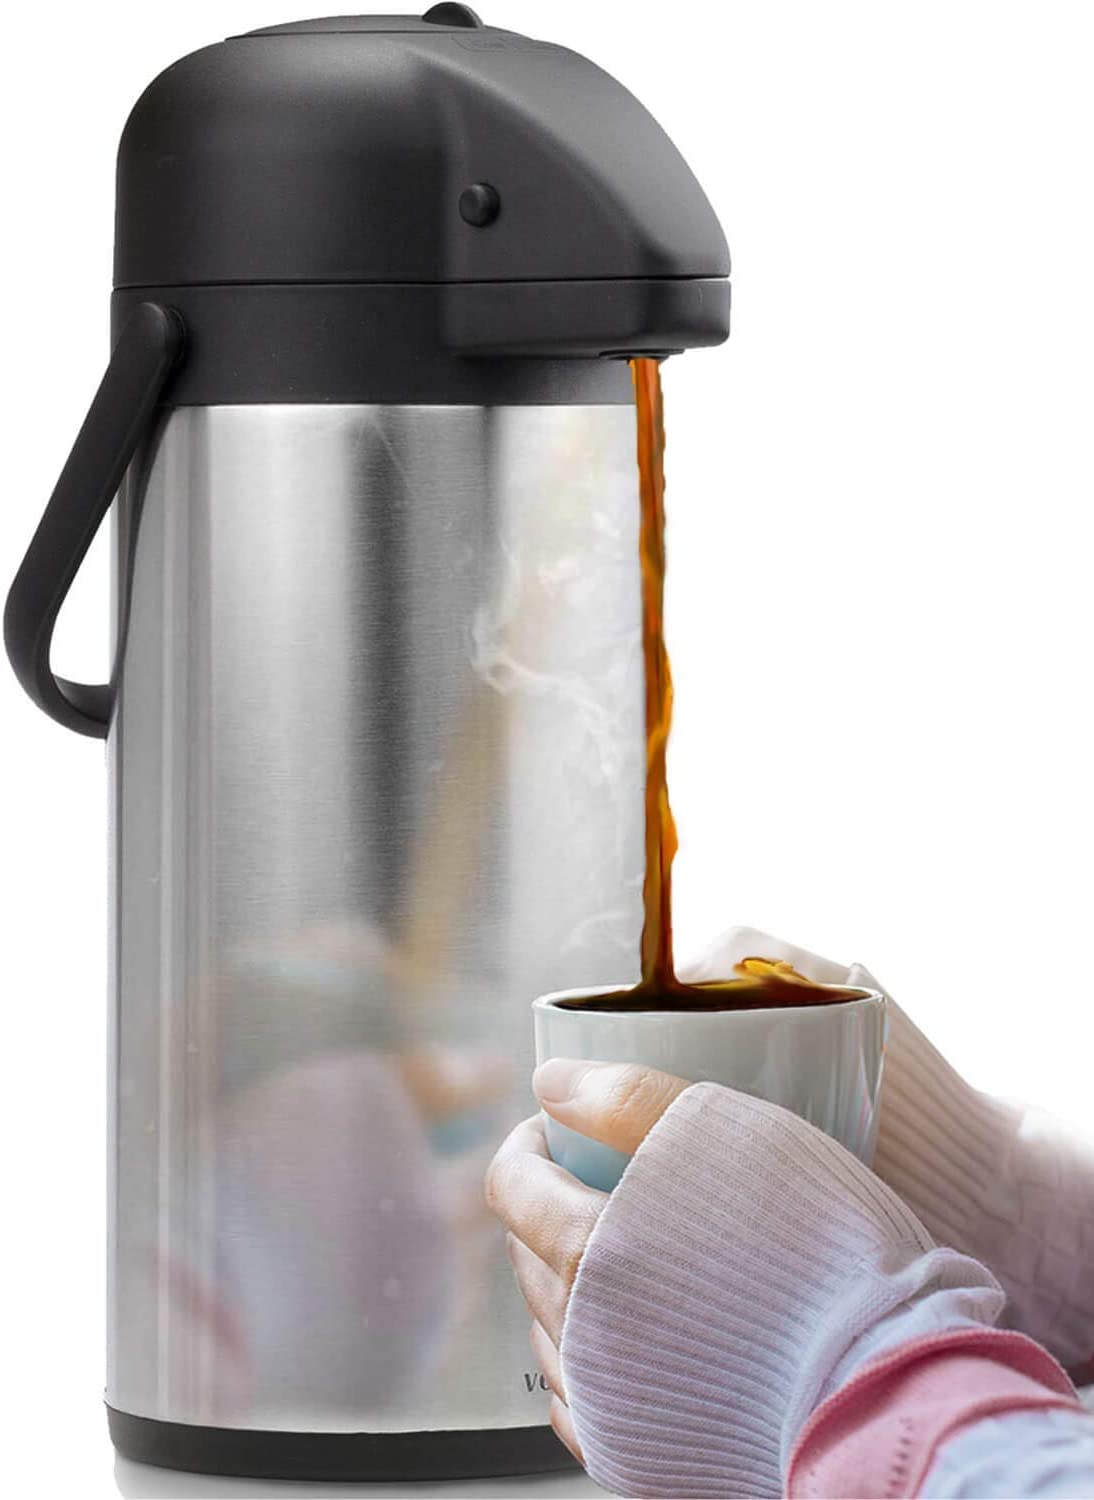 Airpot Coffee Carafe - Thermal Beverage Dispenser (102 oz.) By Vondior. Insulated Stainless Steel Coffee Thermos Urn For Hot/Cold Water, Pump Action Airpot, Party Chocolate Drink (Renewed)